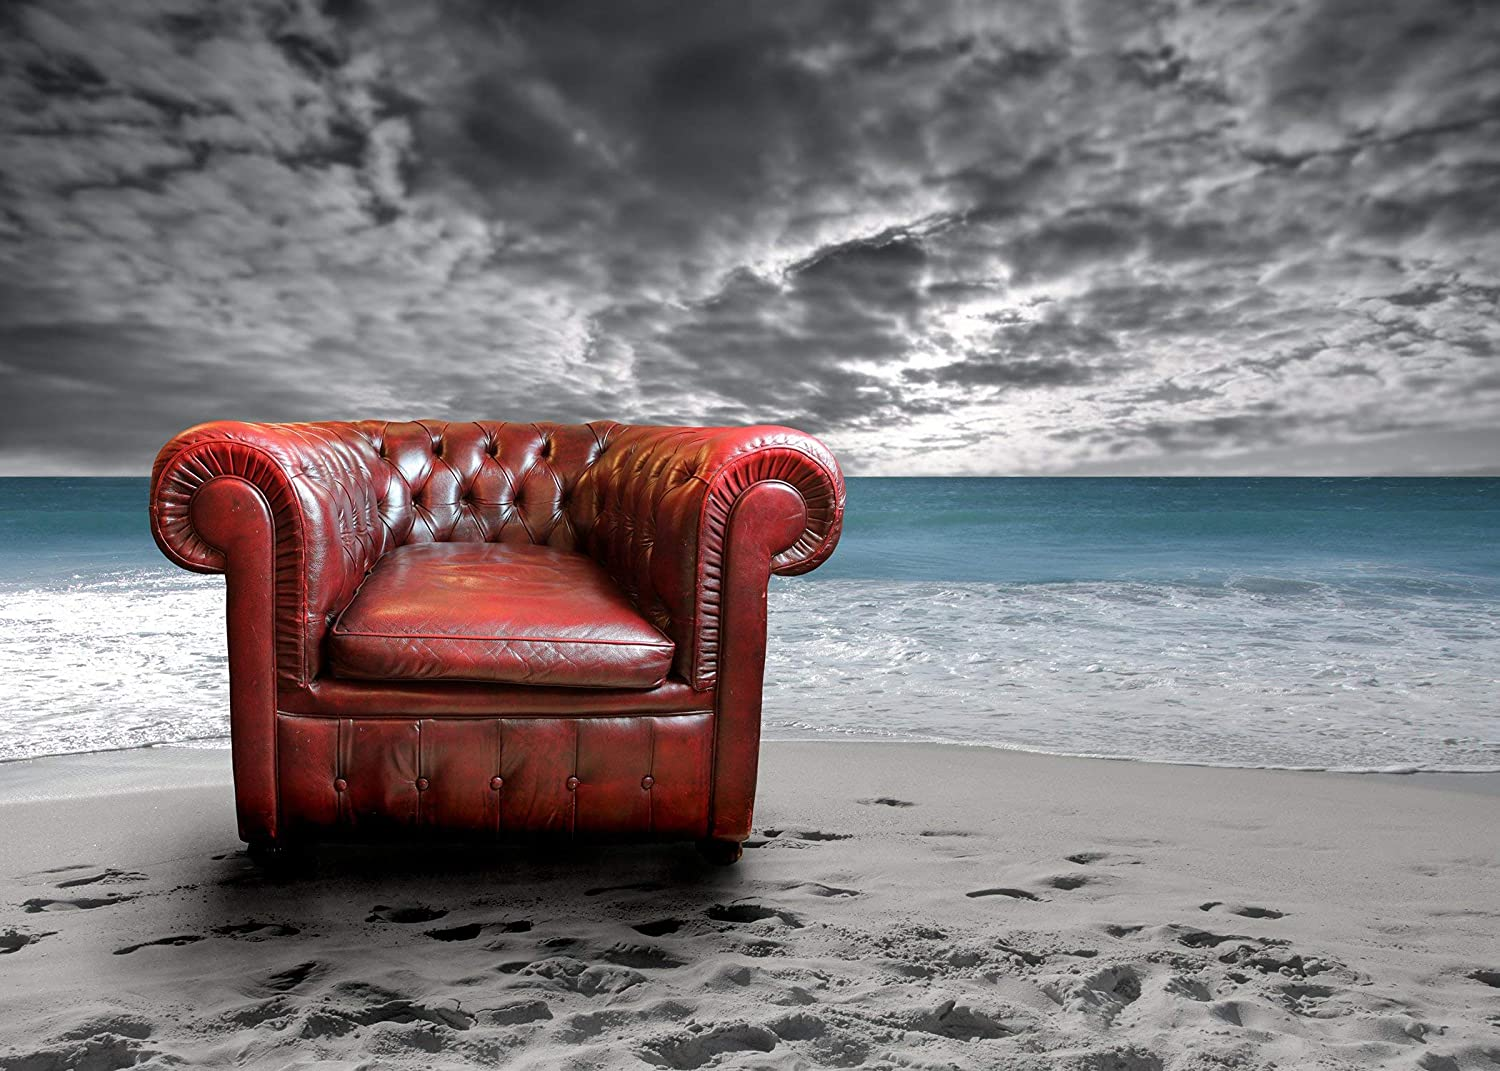 GoHeBe 10 x 7 ft Polyester Seaside Beach Photography Backdrops Photo Studio Props Red Sofa Background Room Mural 107-89